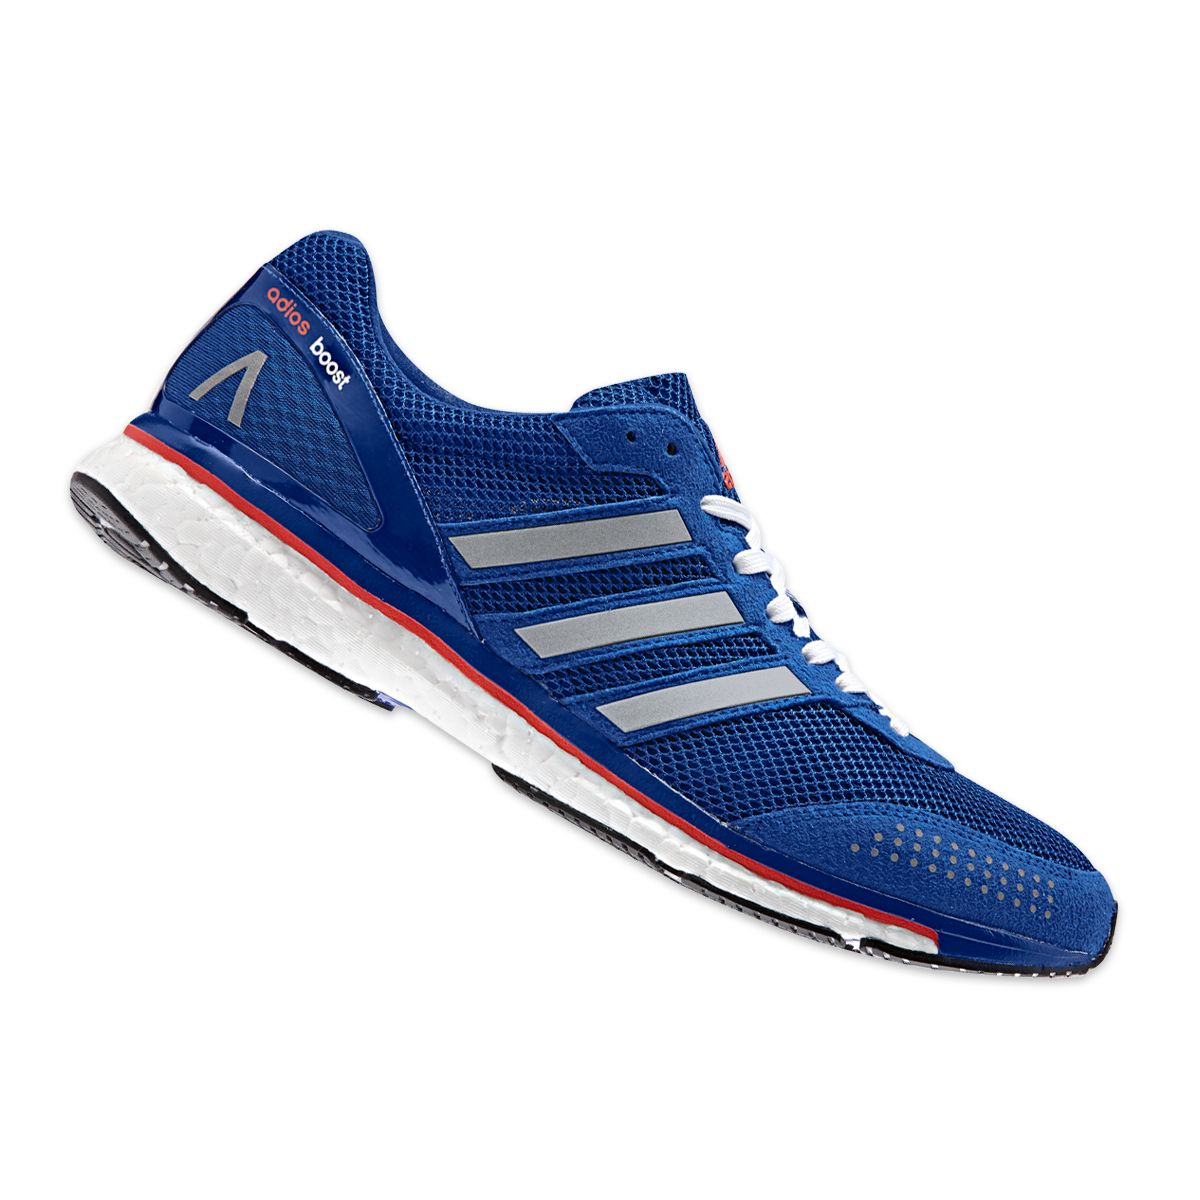 sports shoes dc137 d4972 Adizero Adios Boost 2 Mens The Adizero Adios from adidas has delivered each  of the past 4 marathon world records and the Adios Boost 2 carries on that  ...